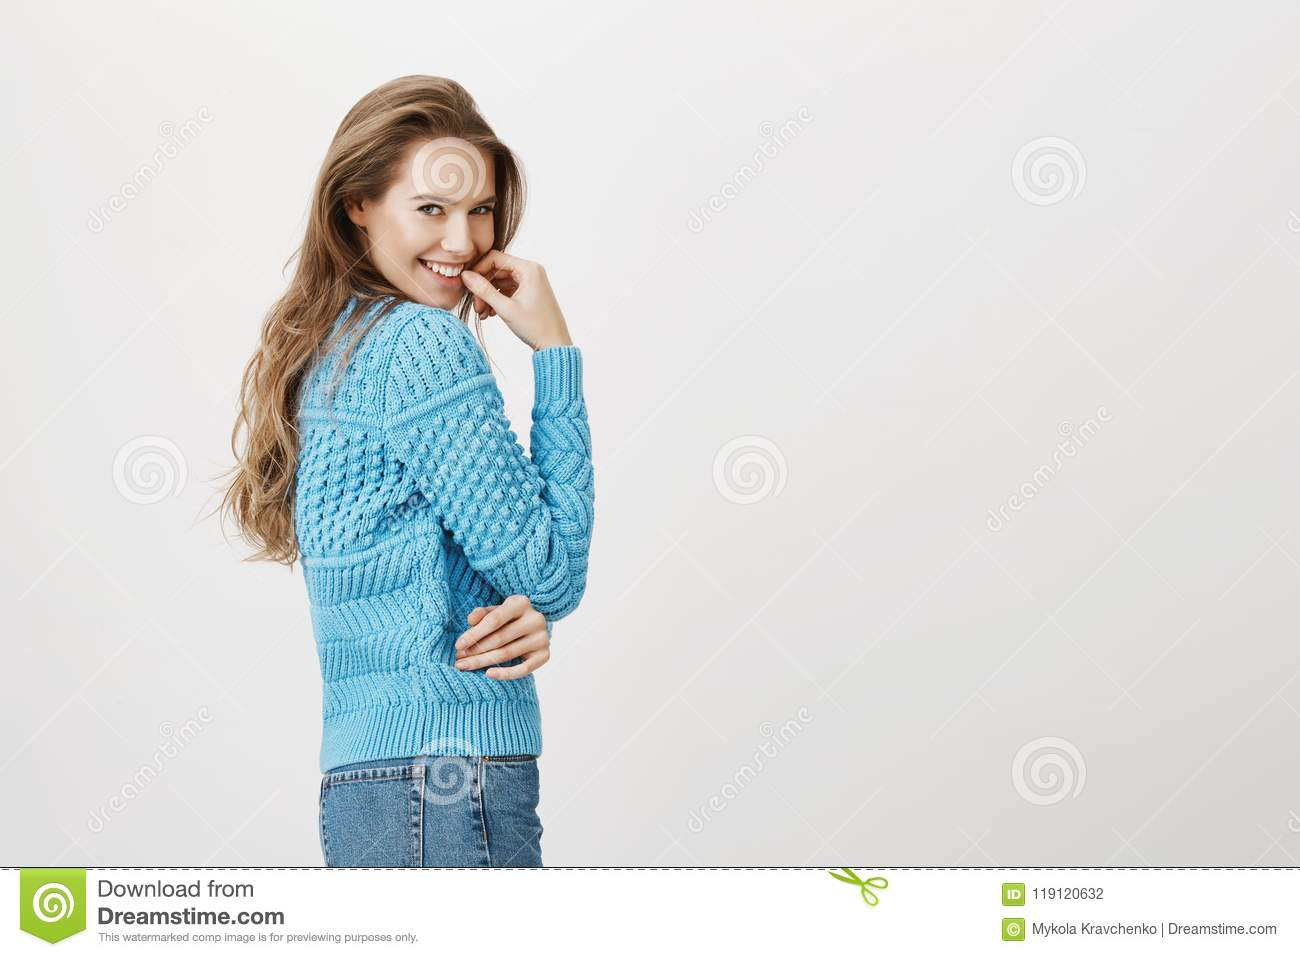 Lovely european adult woman standing in profile while turning at camera, smiling and holding finger near lip with